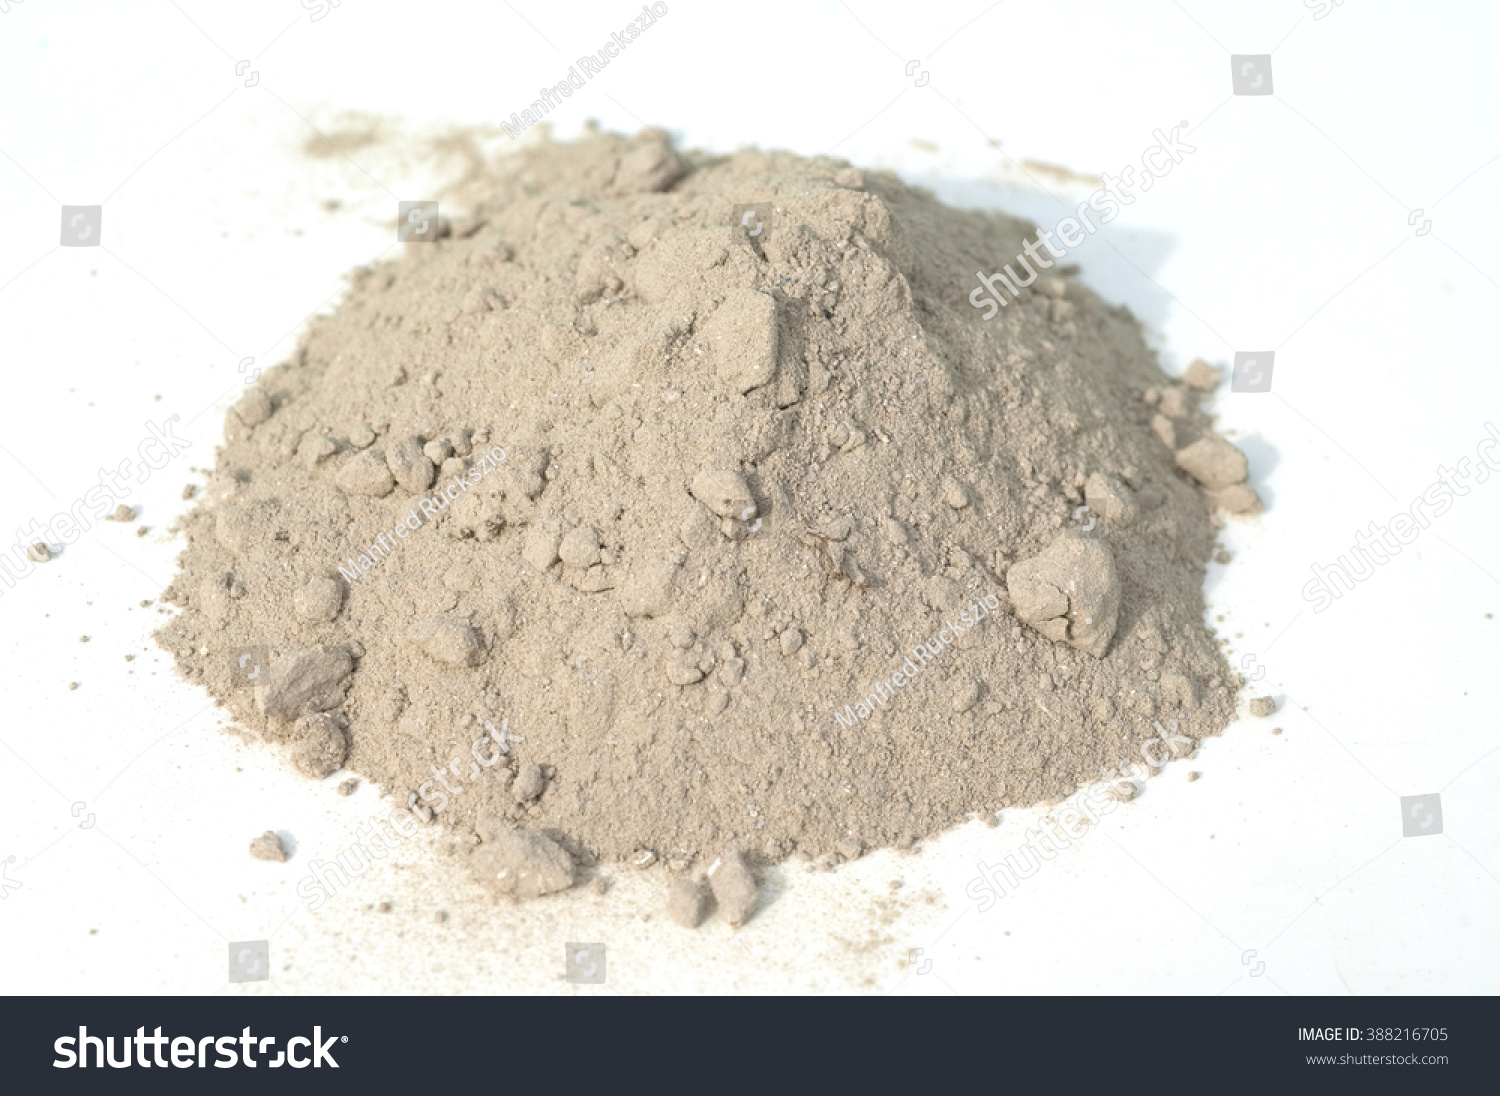 Loess Soil Earth Stock Photo 388216705 - Shutterstock